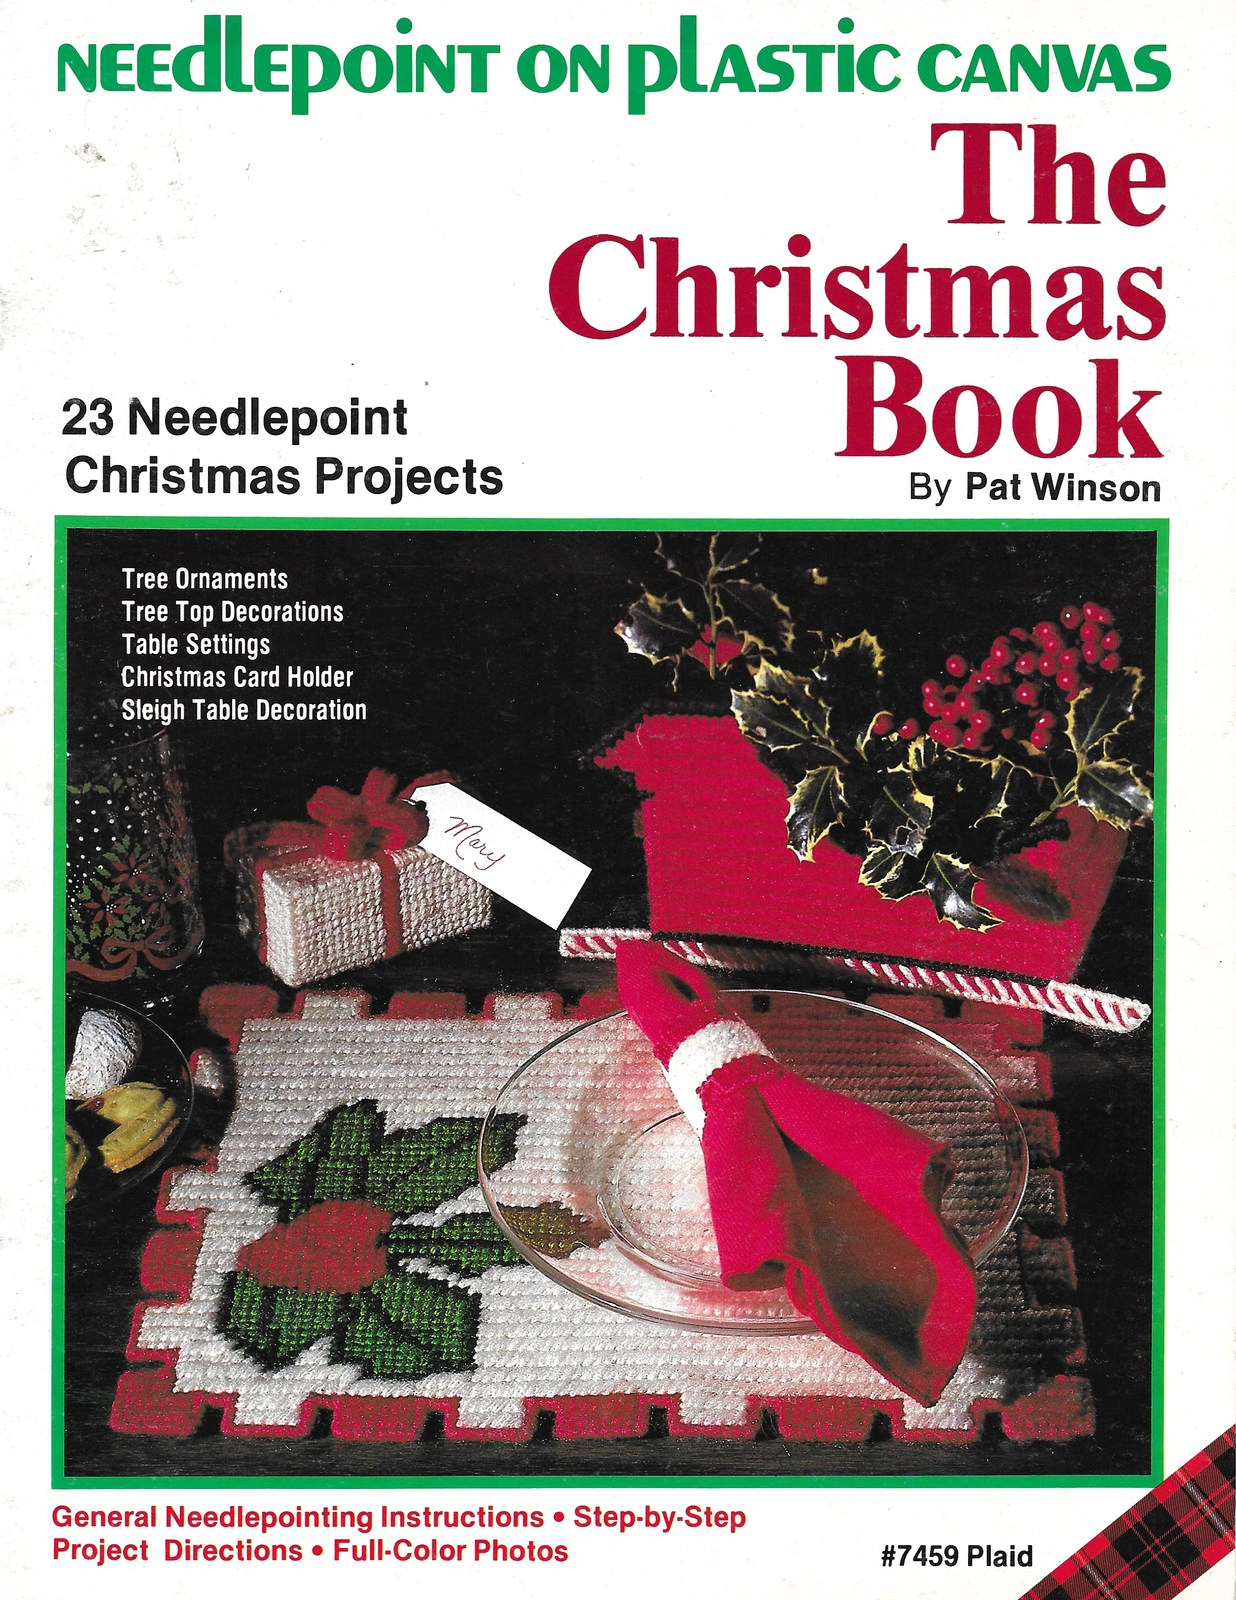 Plaid Crafts The Christmas Book Needlepoint on Plastic Canvas Patterns - $5.99